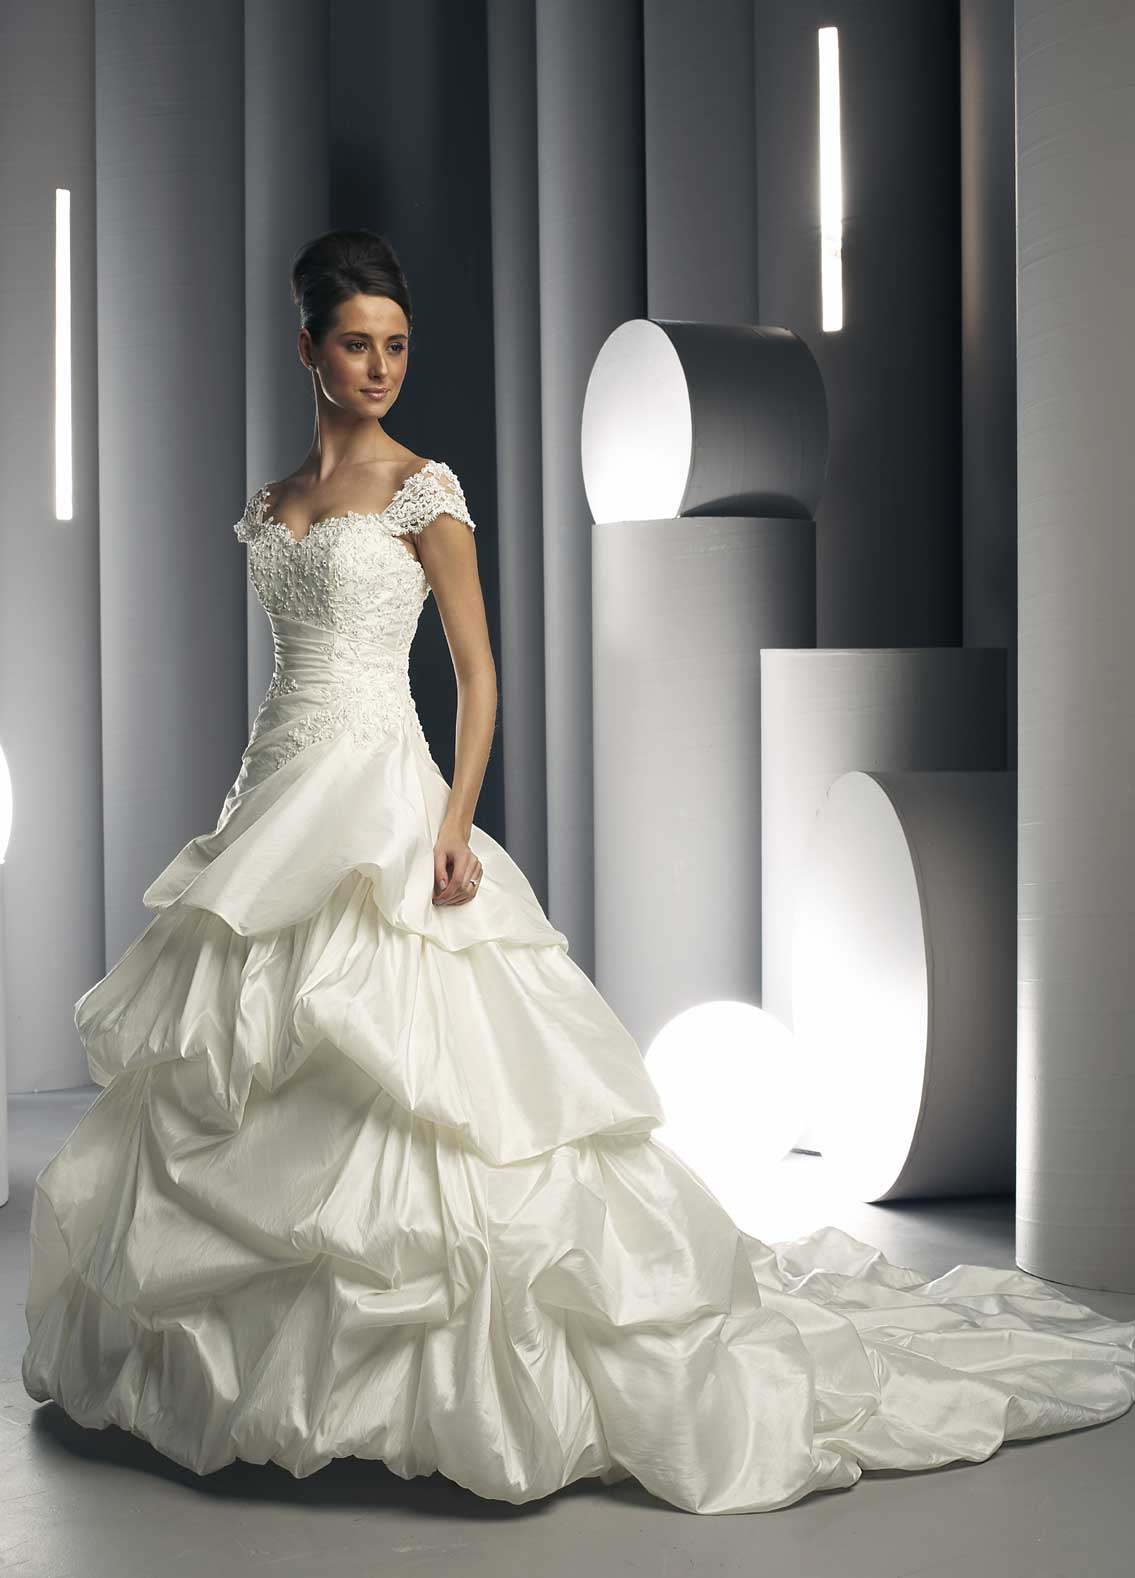 The tradition behind white wedding dresses cherry marry for Dresses that can be used as a wedding dress